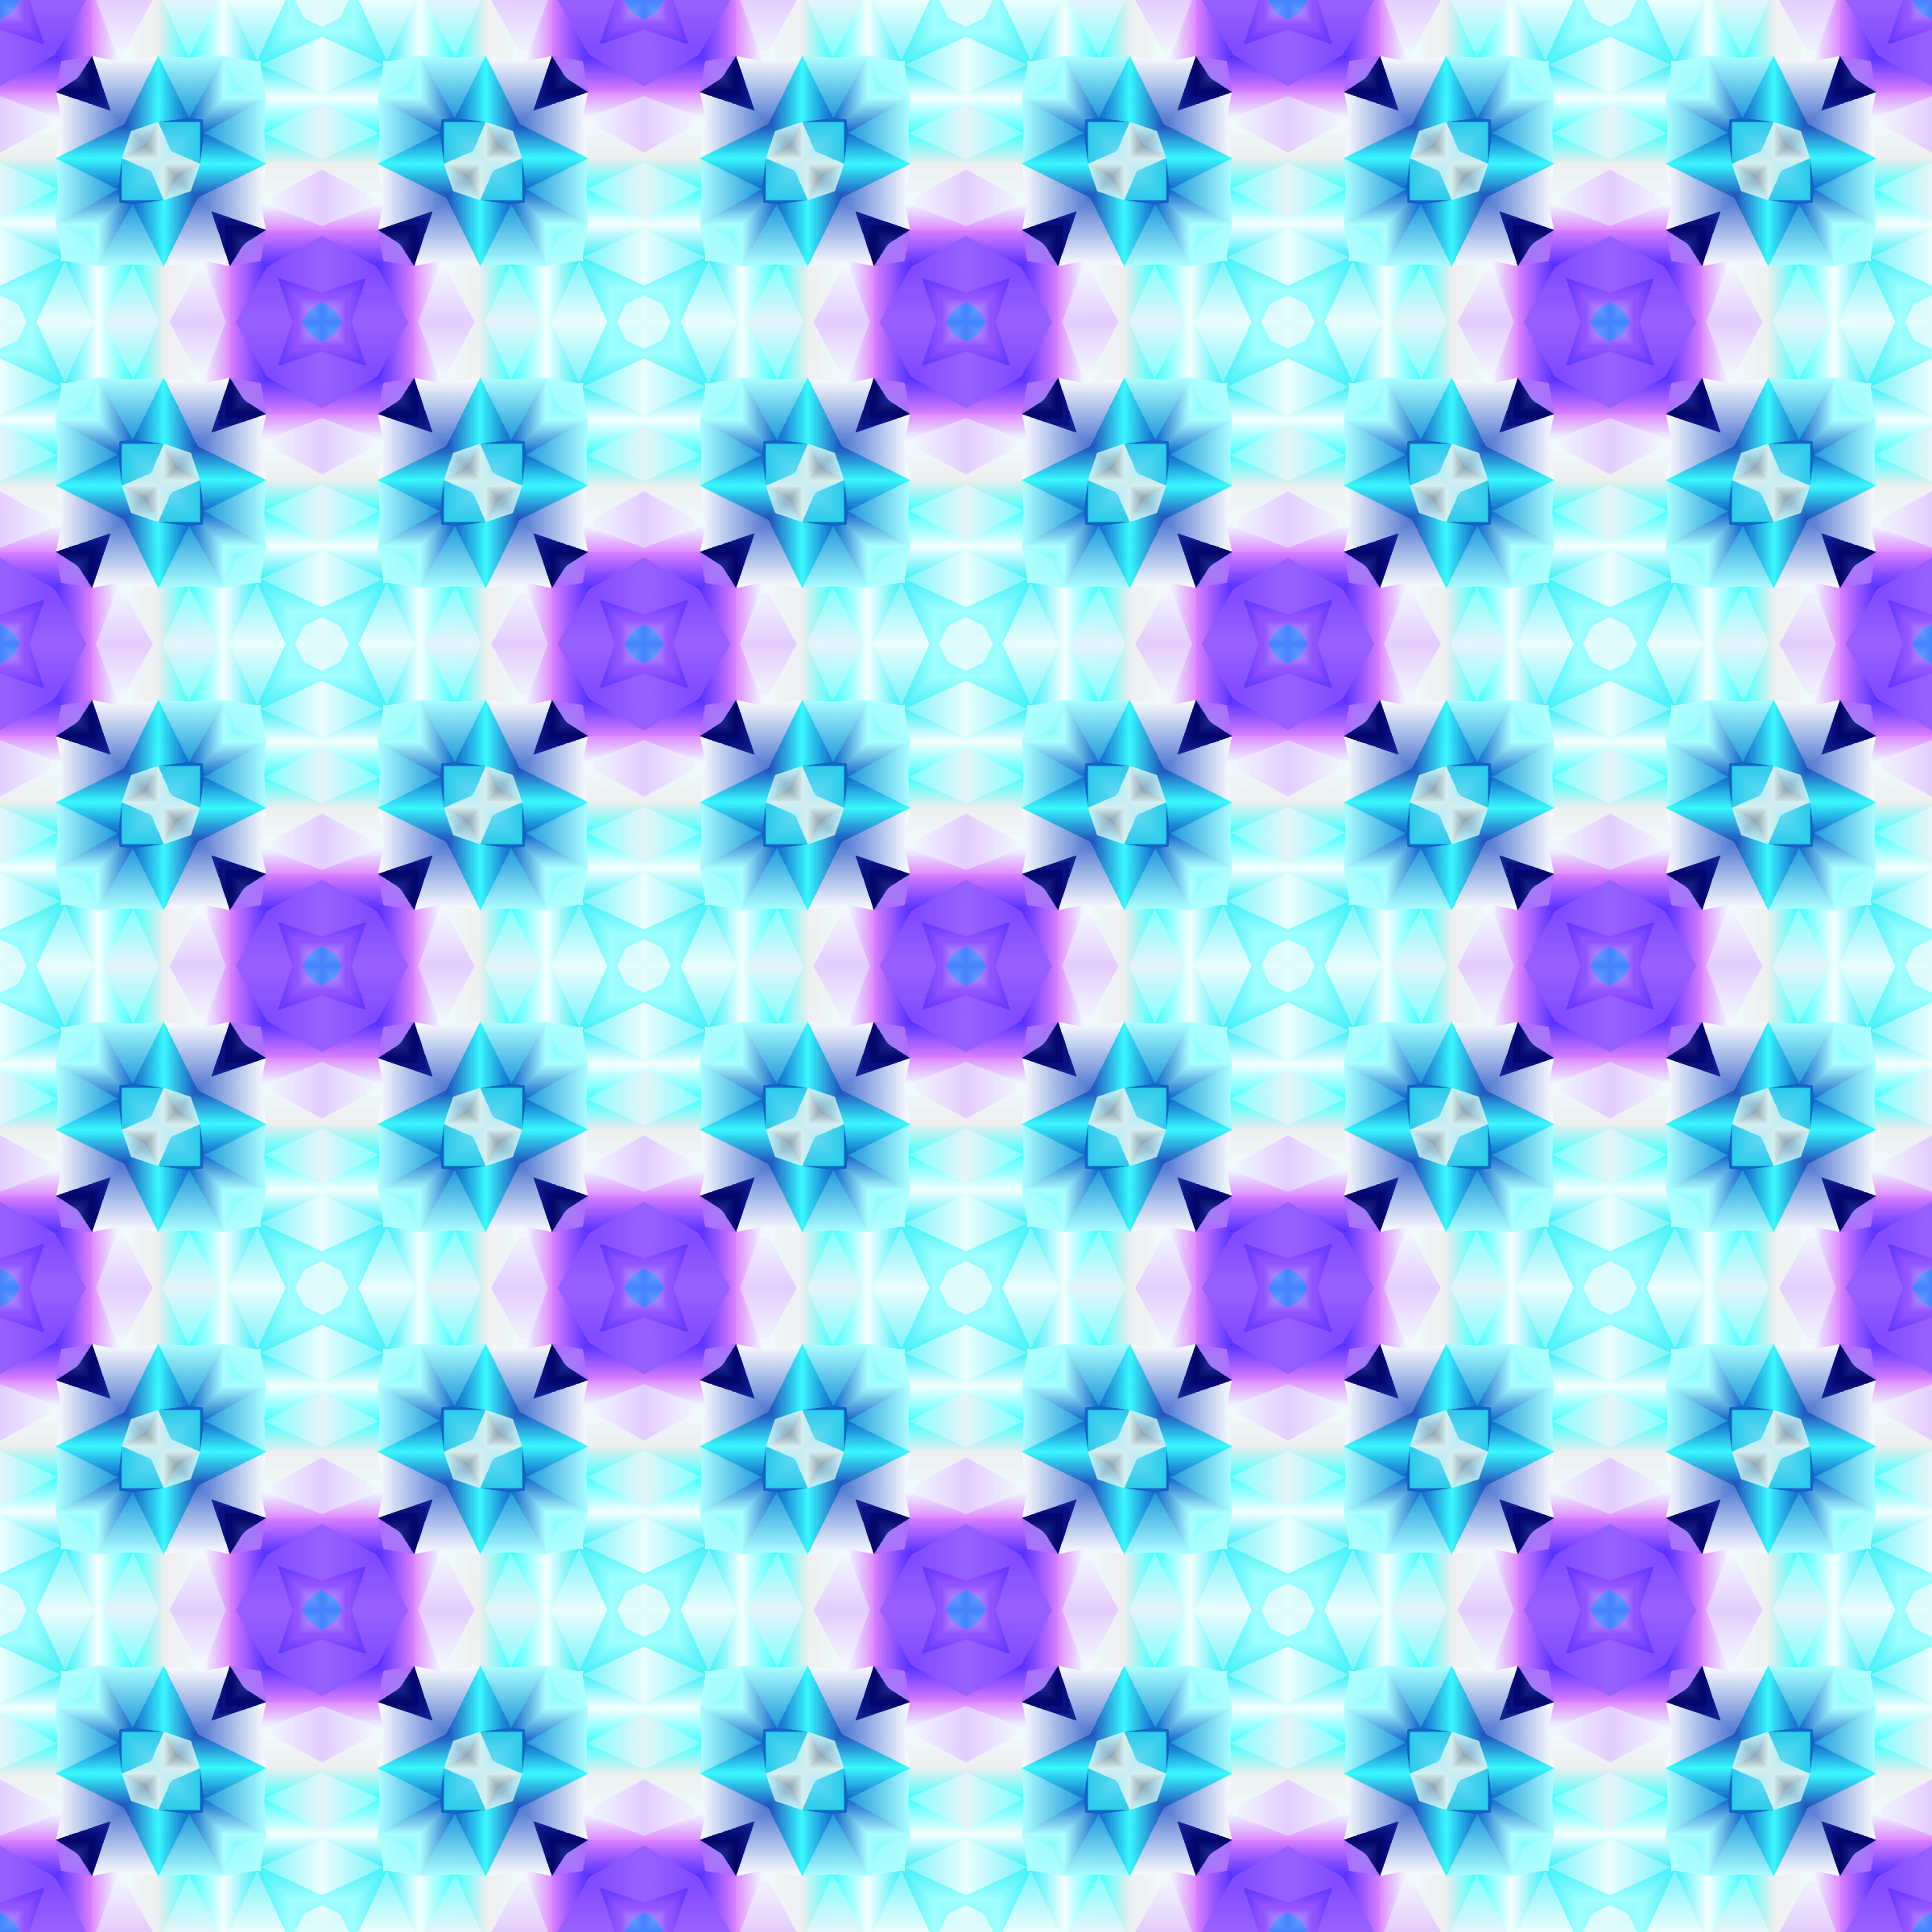 Background pattern 140 (colour 6) by Firkin